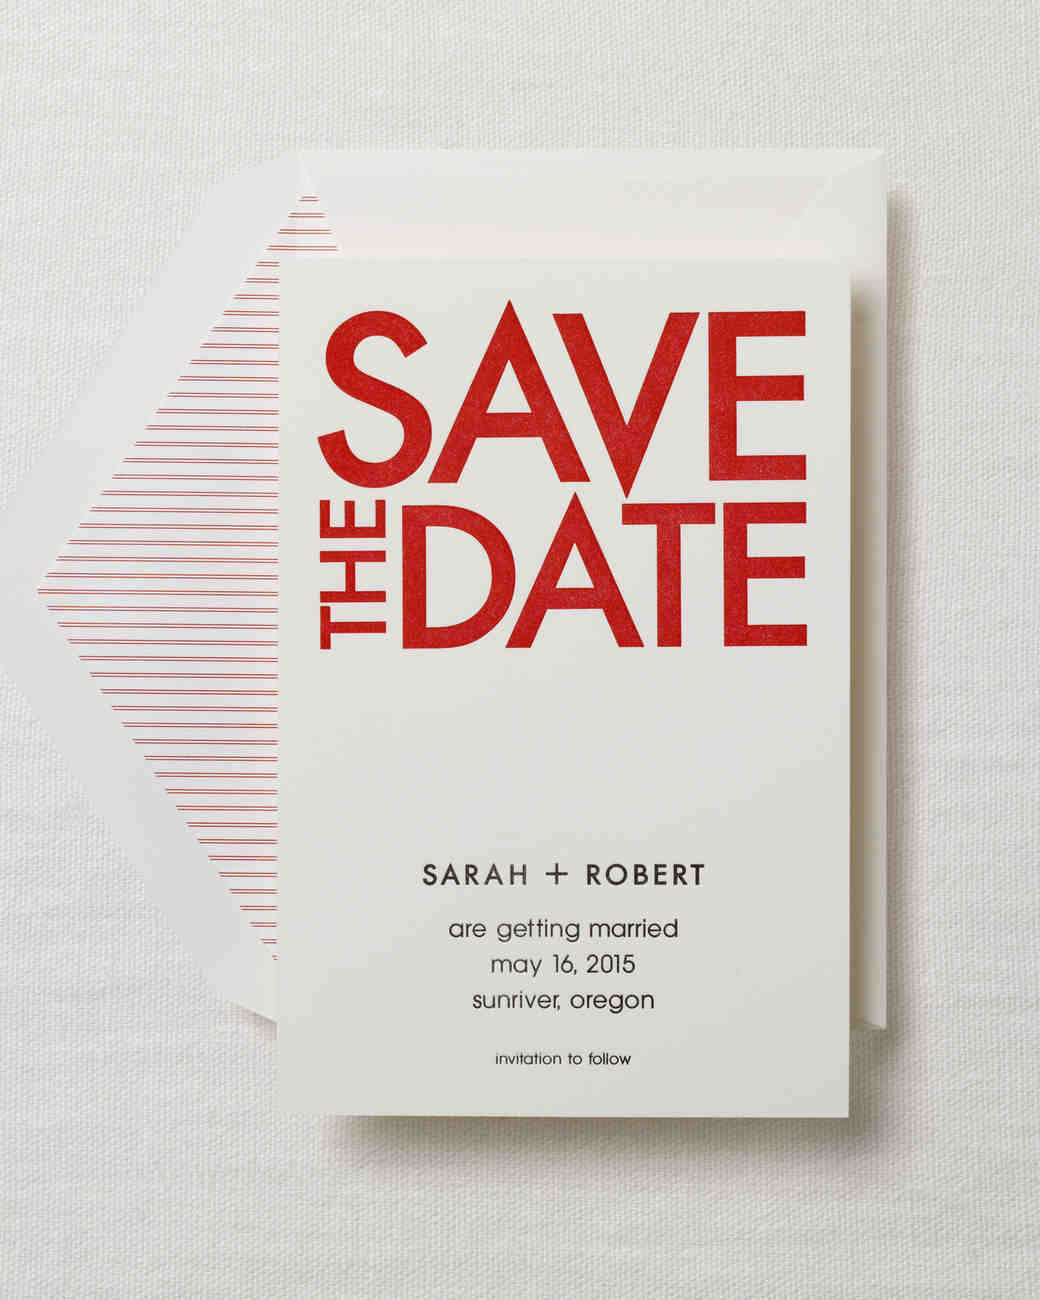 Modern Sleek Design Modern Save The Dates For A Contemporary Celebration